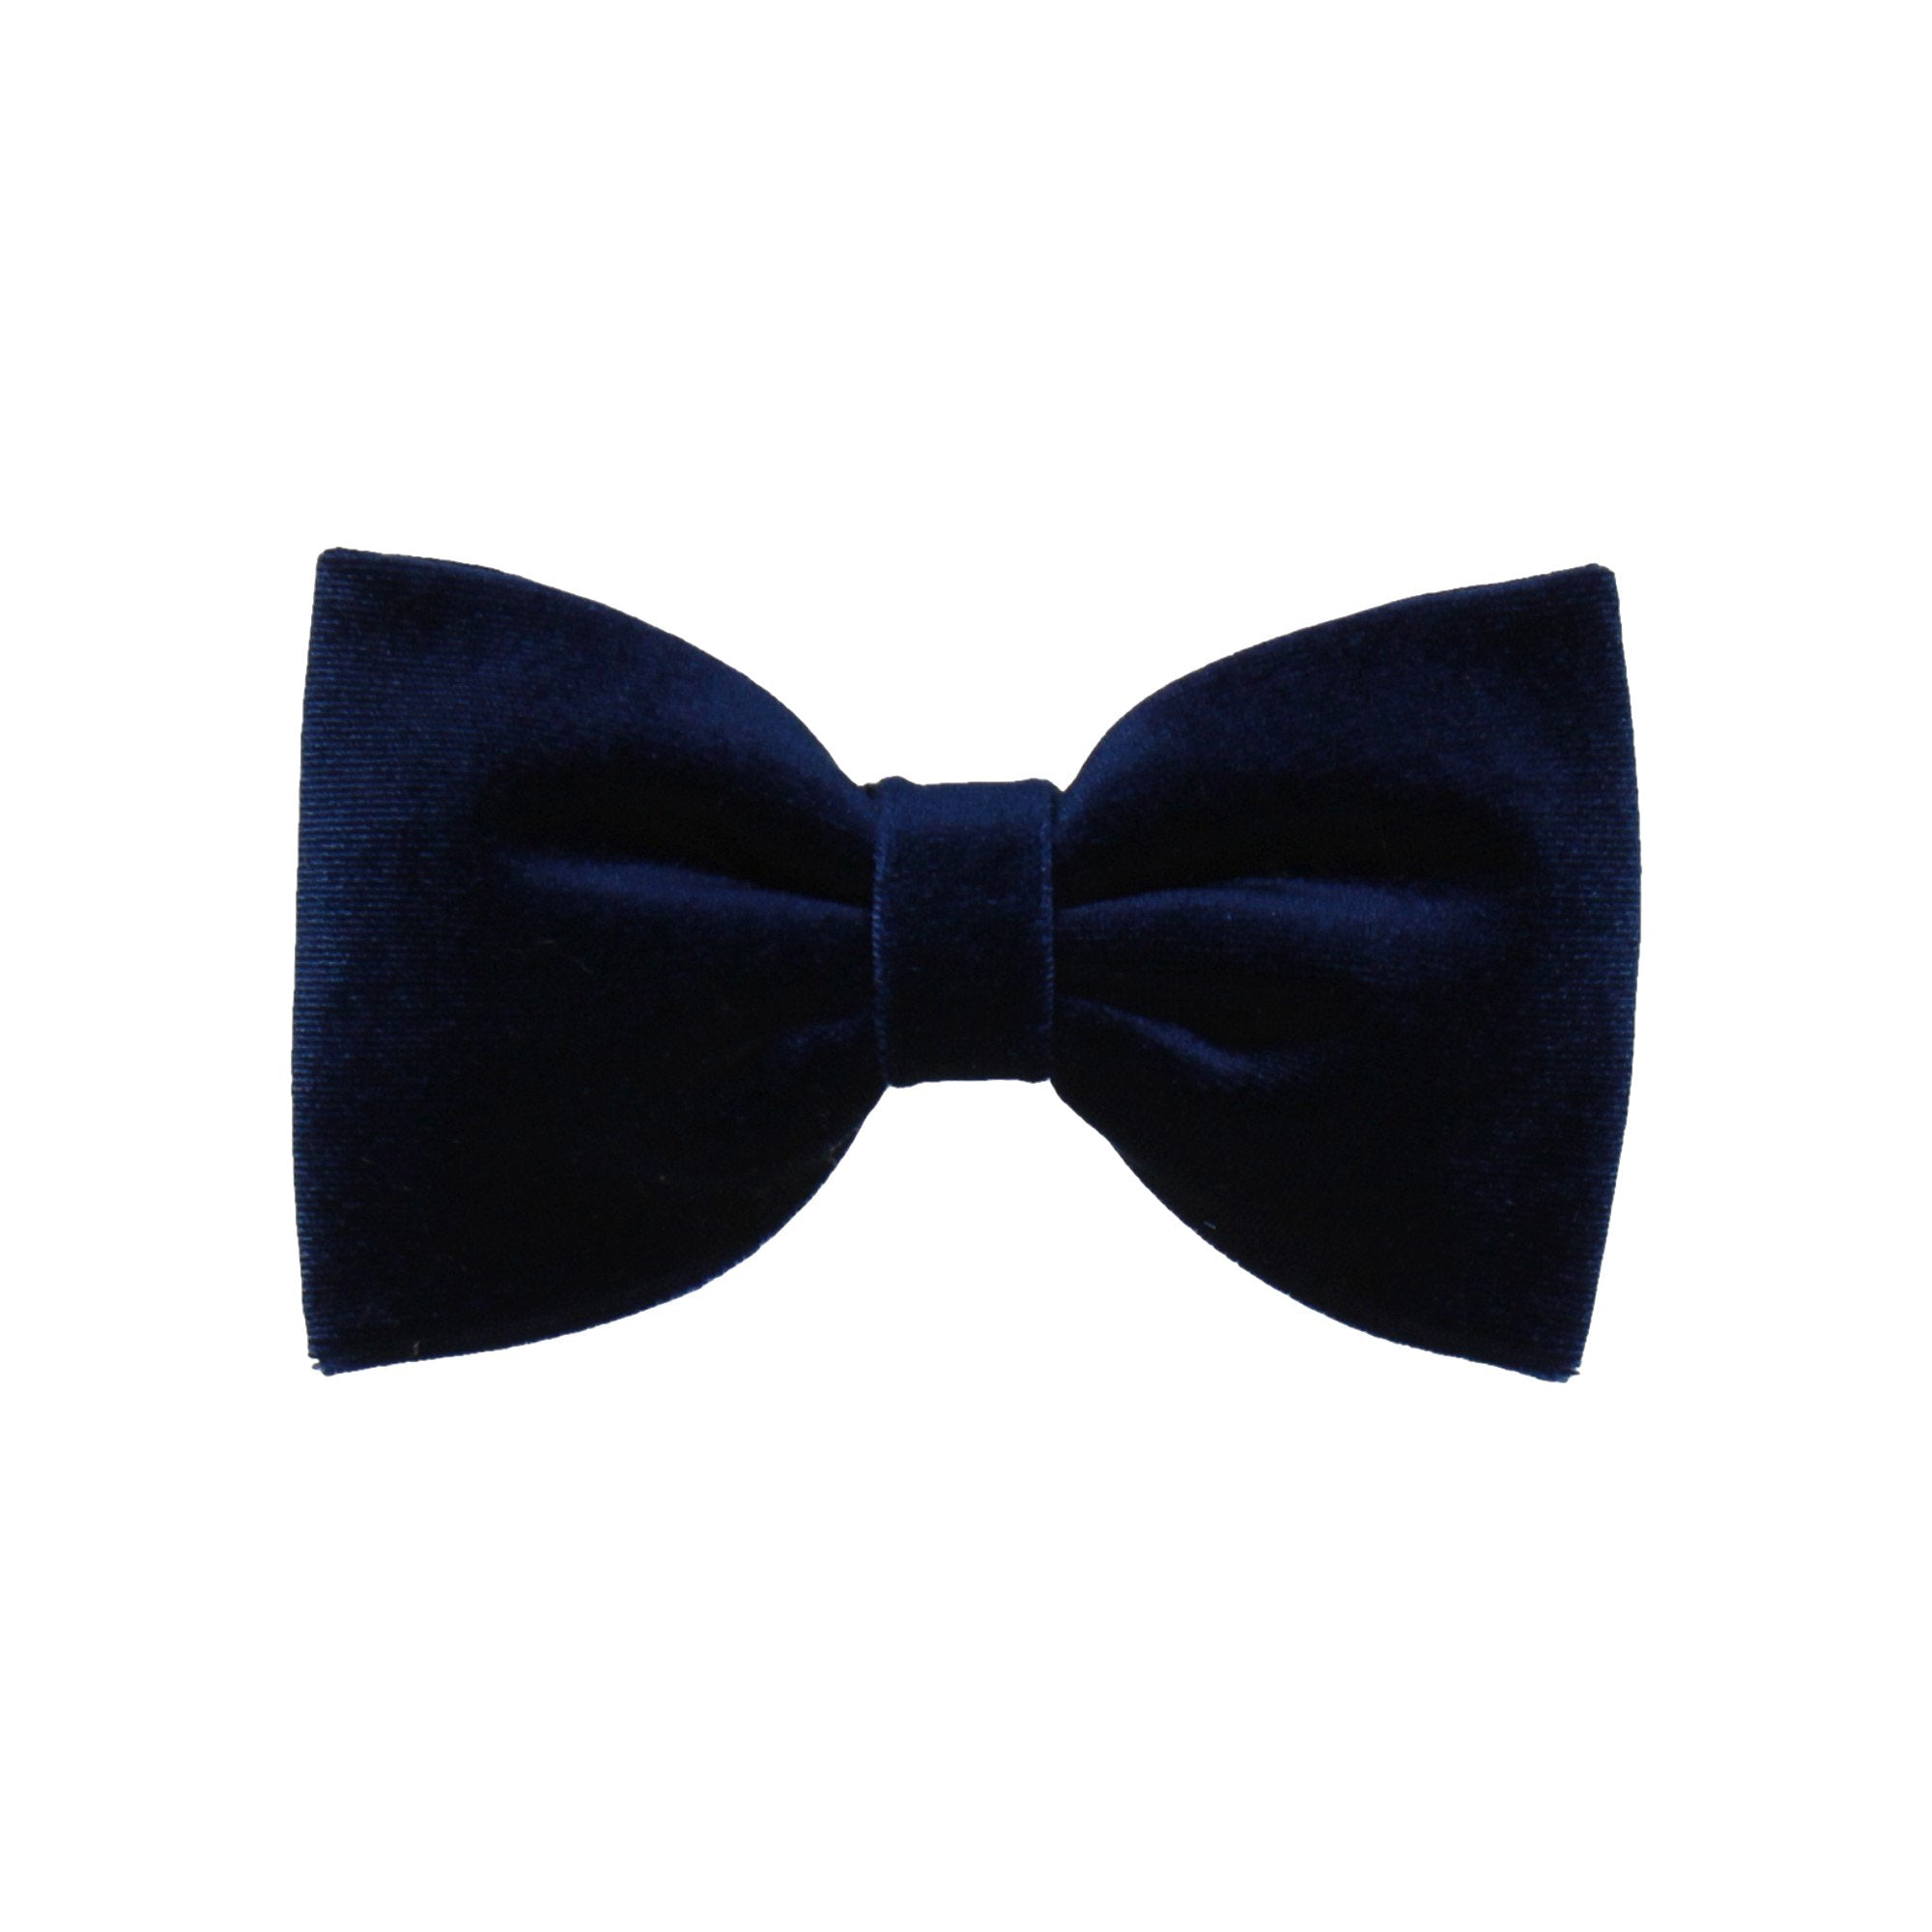 Velvet in Navy (Child's Bow Tie)